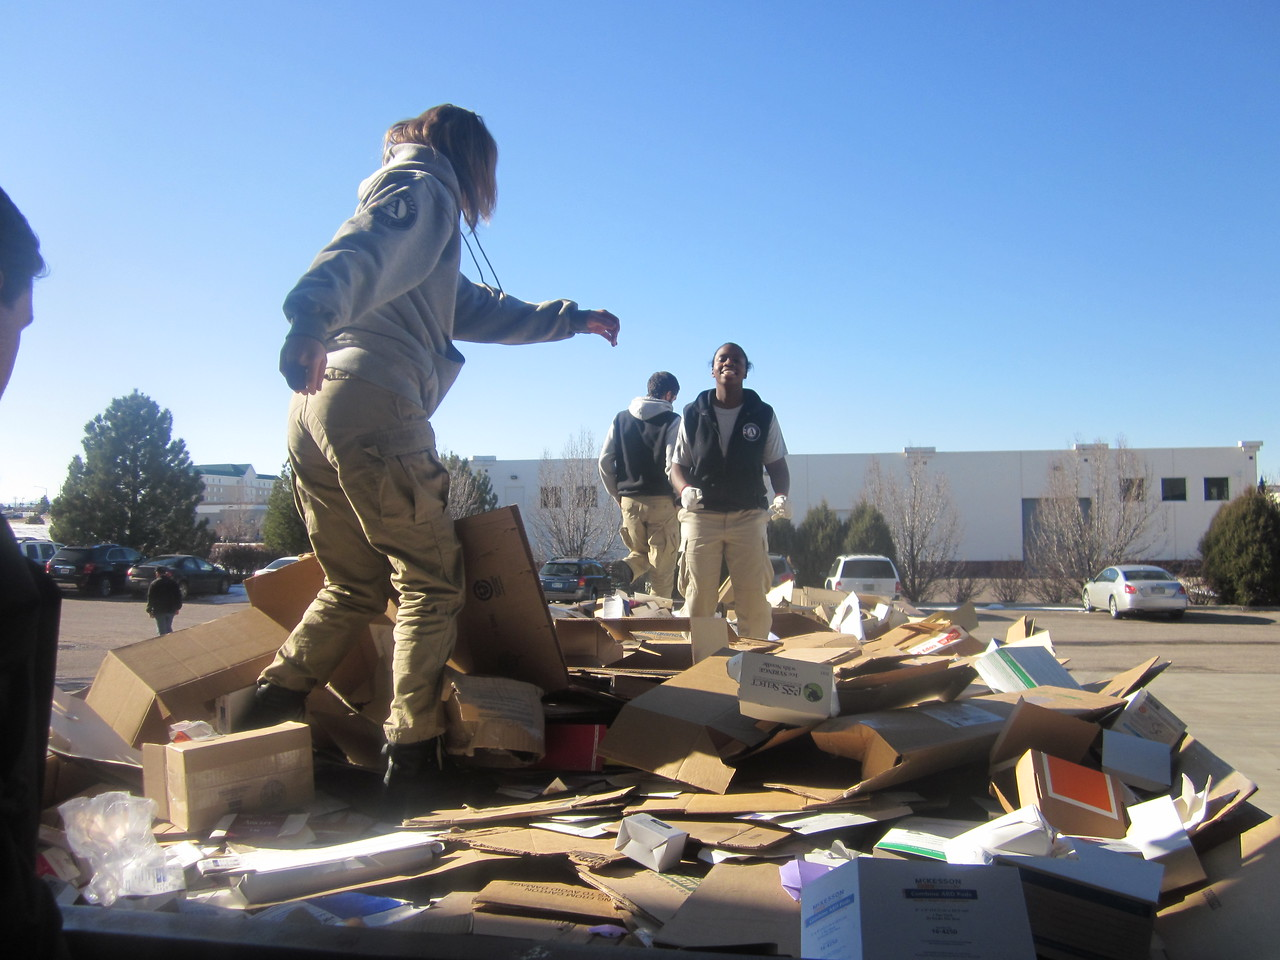 E7 r1 project cure Earth 7 prepares boxes for recyling in Denver during Round 1 of Class 18. AmeriCorps NCCC. Corporation for National and Community Service Photo.